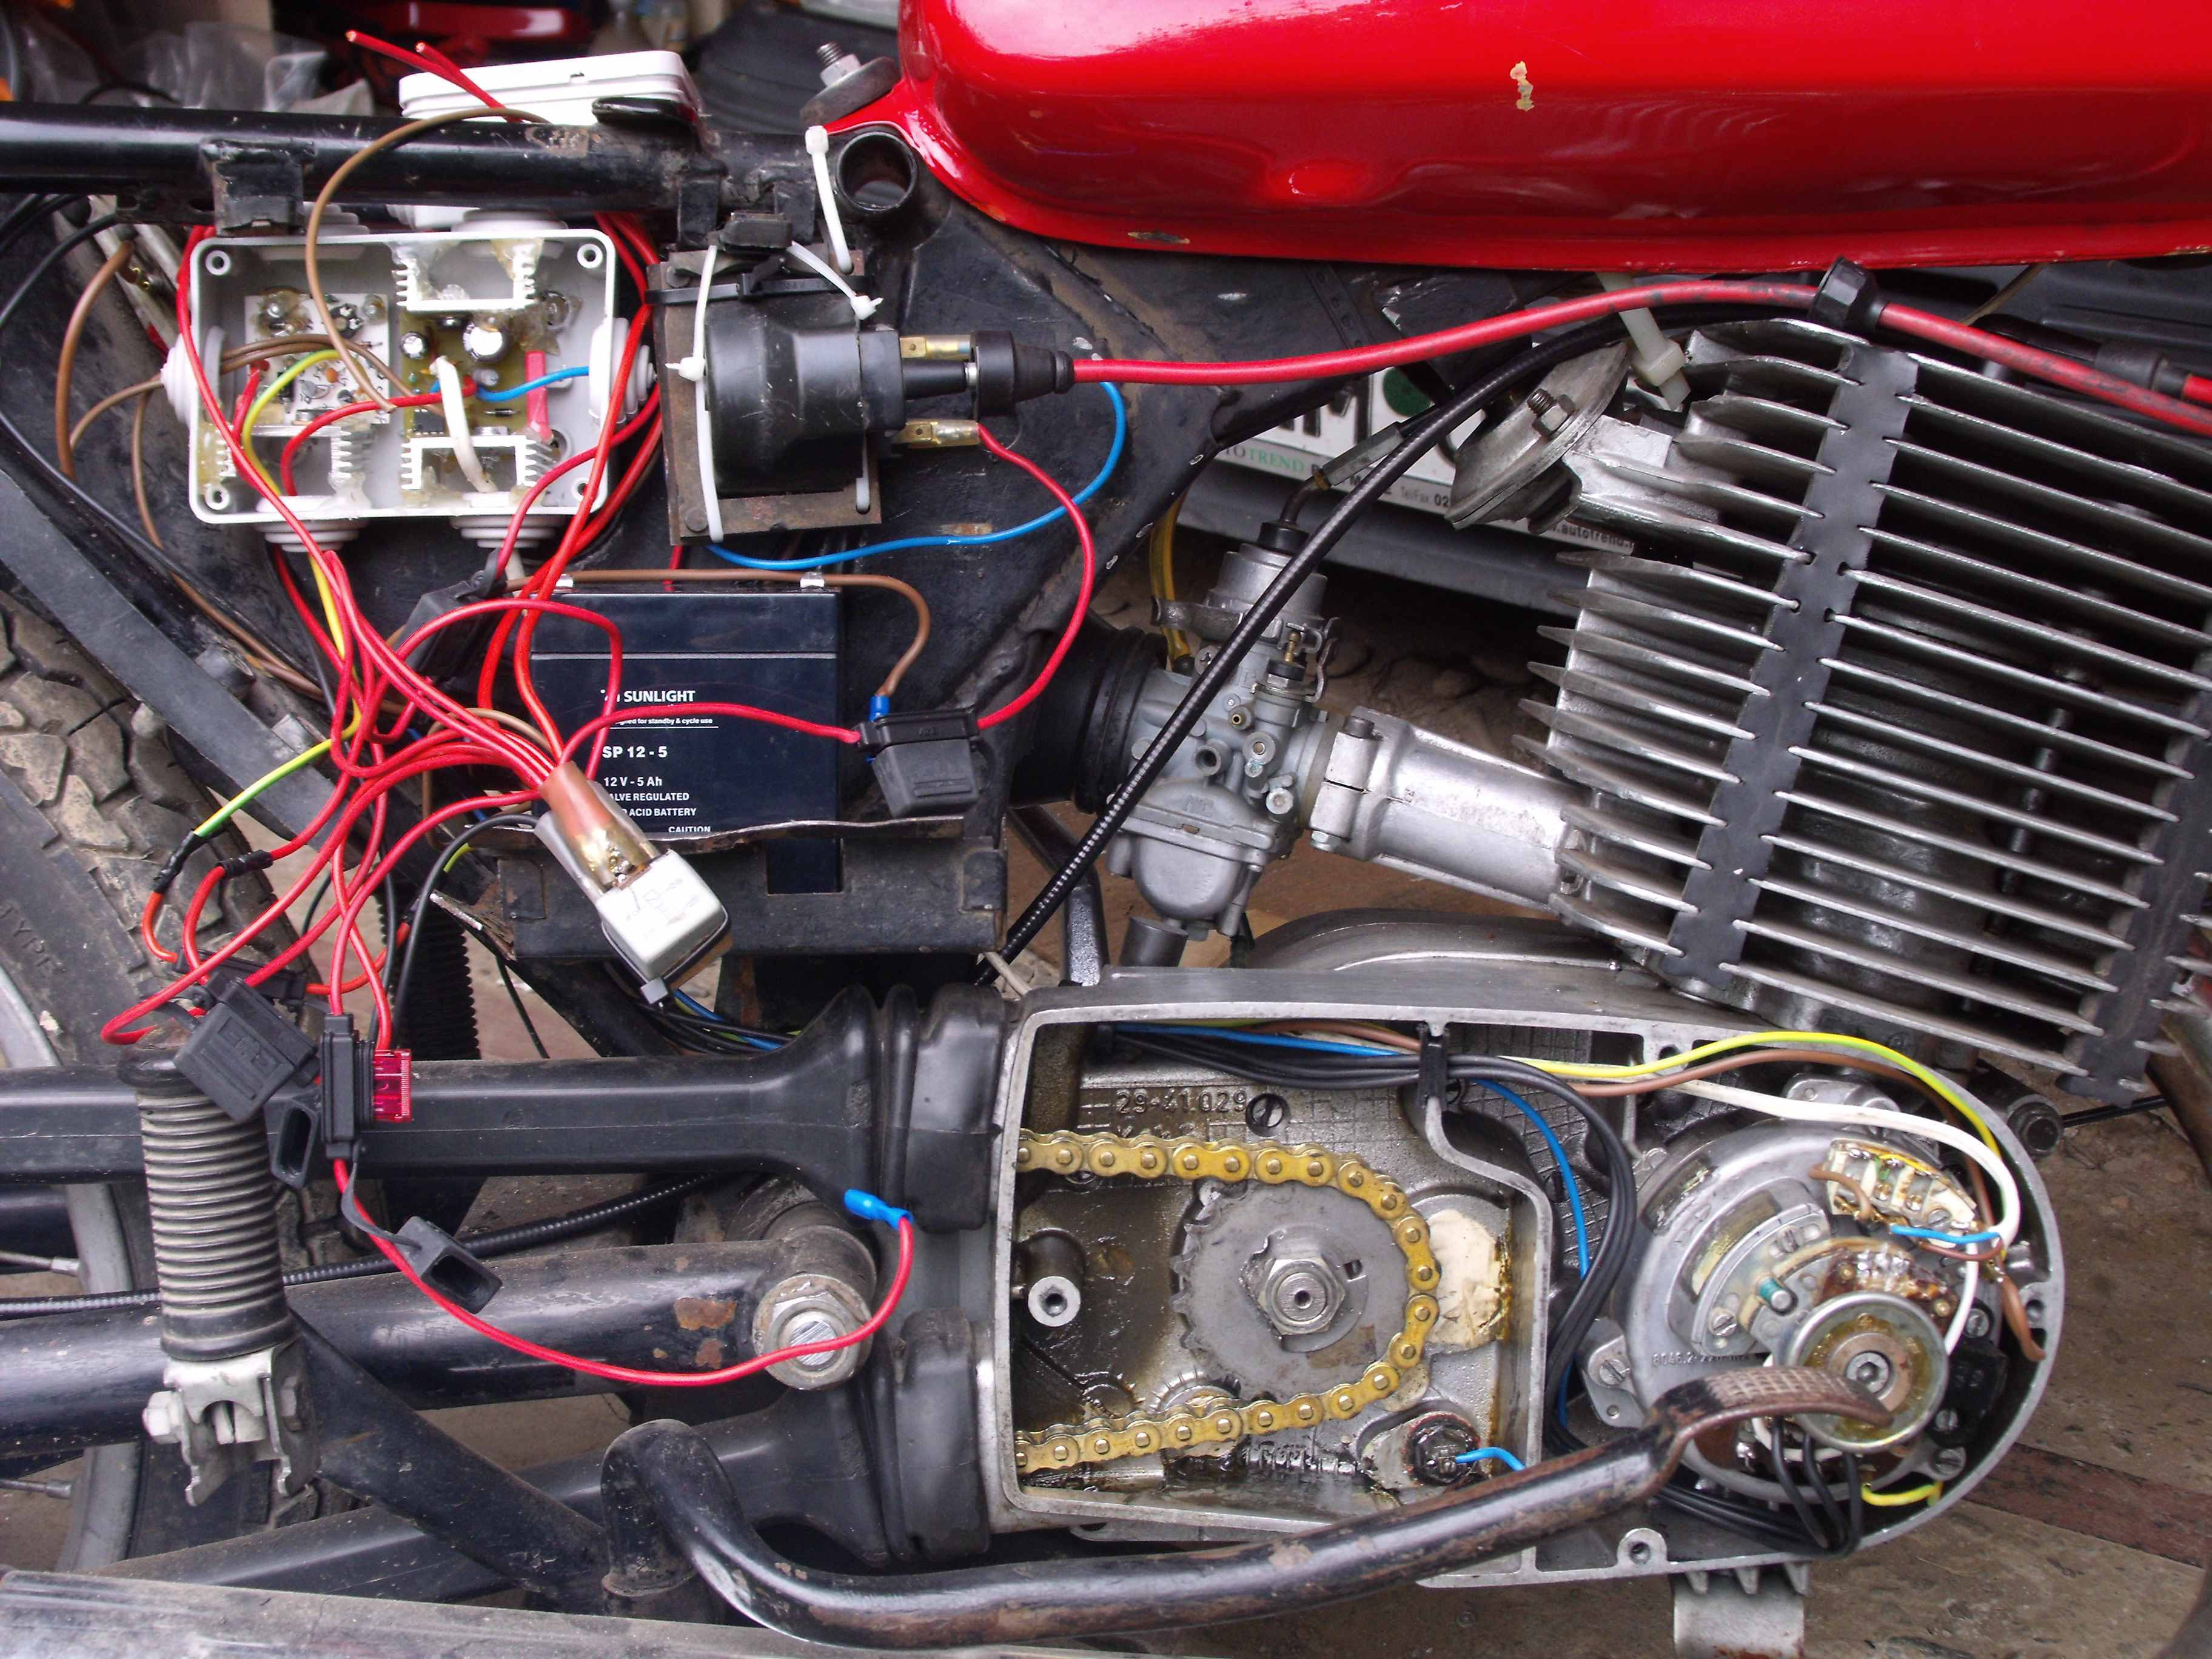 12v Wiring Diagram topic19145 likewise Willys Jeep M38 Wiring Diagram as well HP PartList moreover  besides 1951 Willys Trucks Wiring Diagrams. on 1946 willys wiring schematic